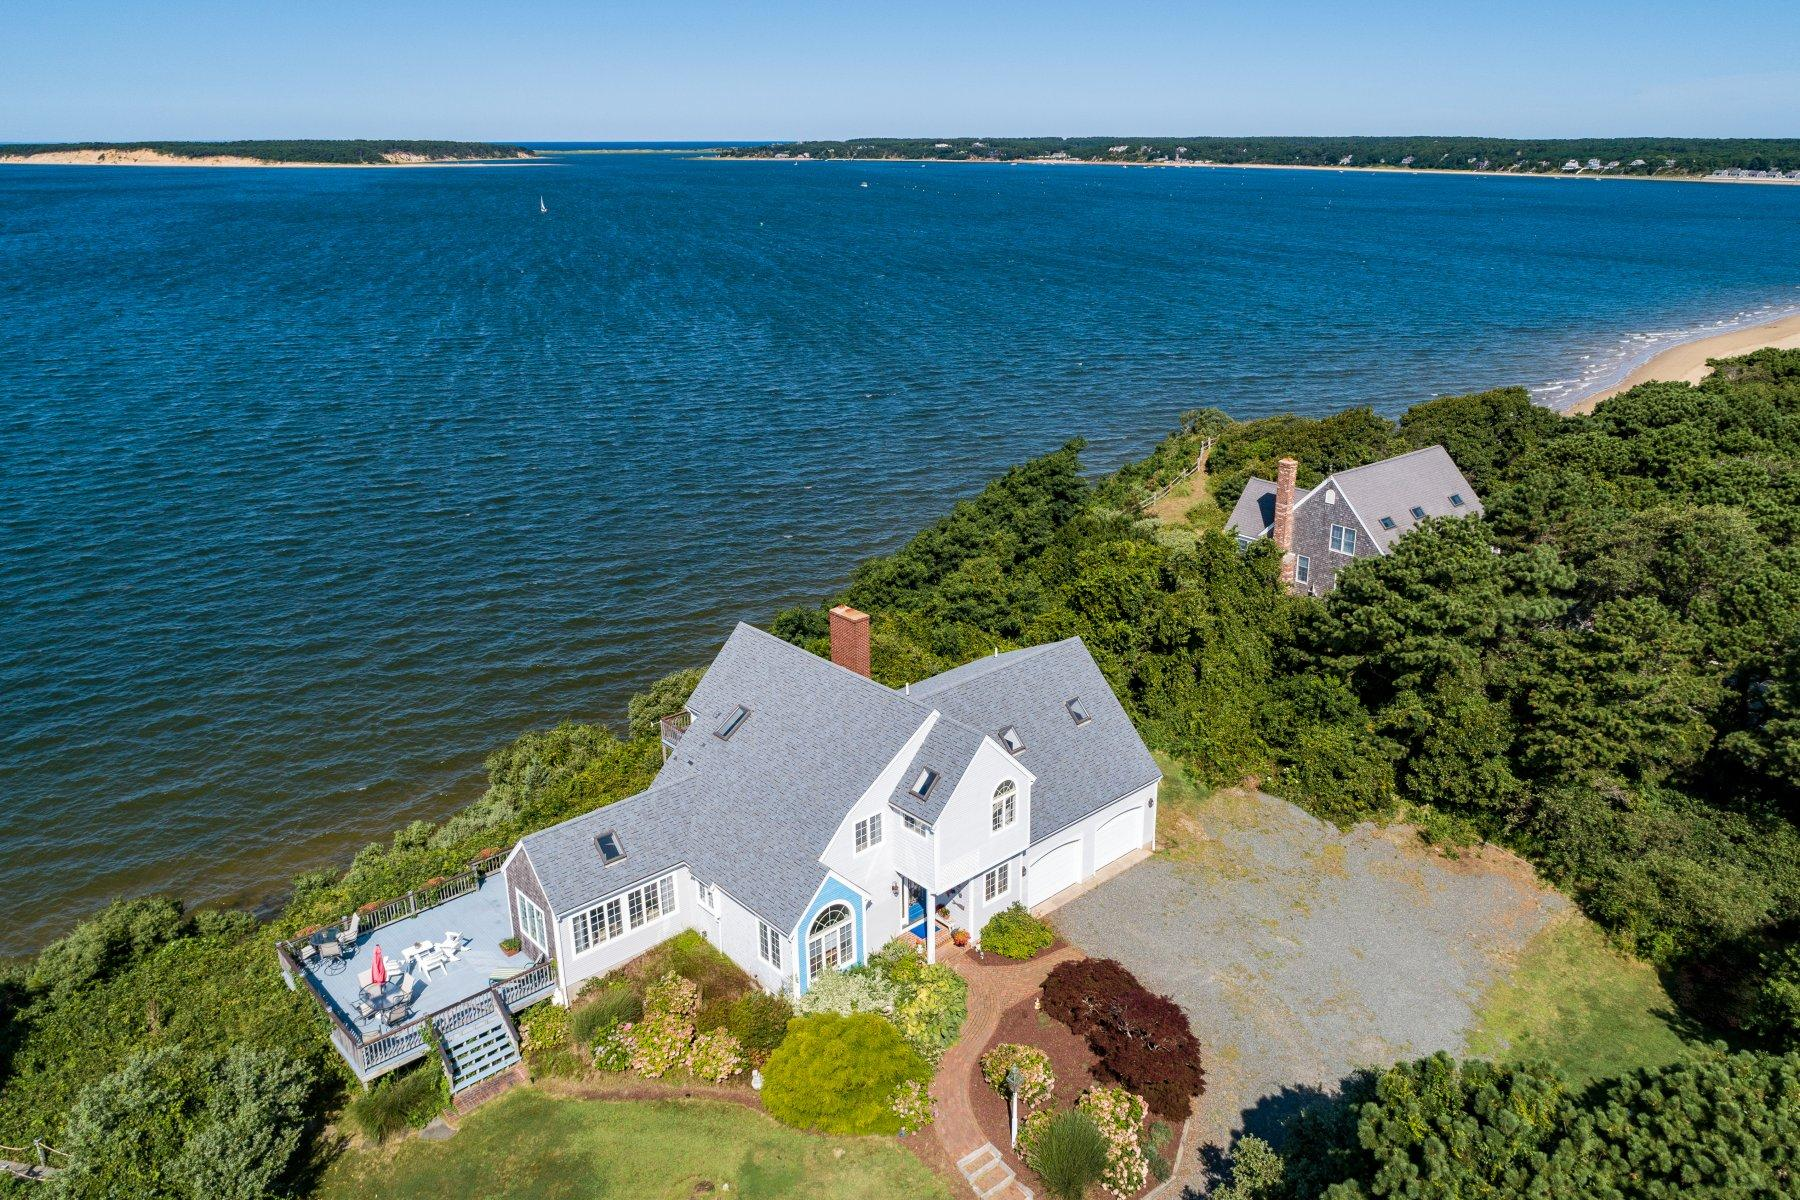 Single Family Homes for Sale at 205 Samoset Avenue, Wellfleet, MA 205 Samoset Avenue Wellfleet, Massachusetts 02667 United States